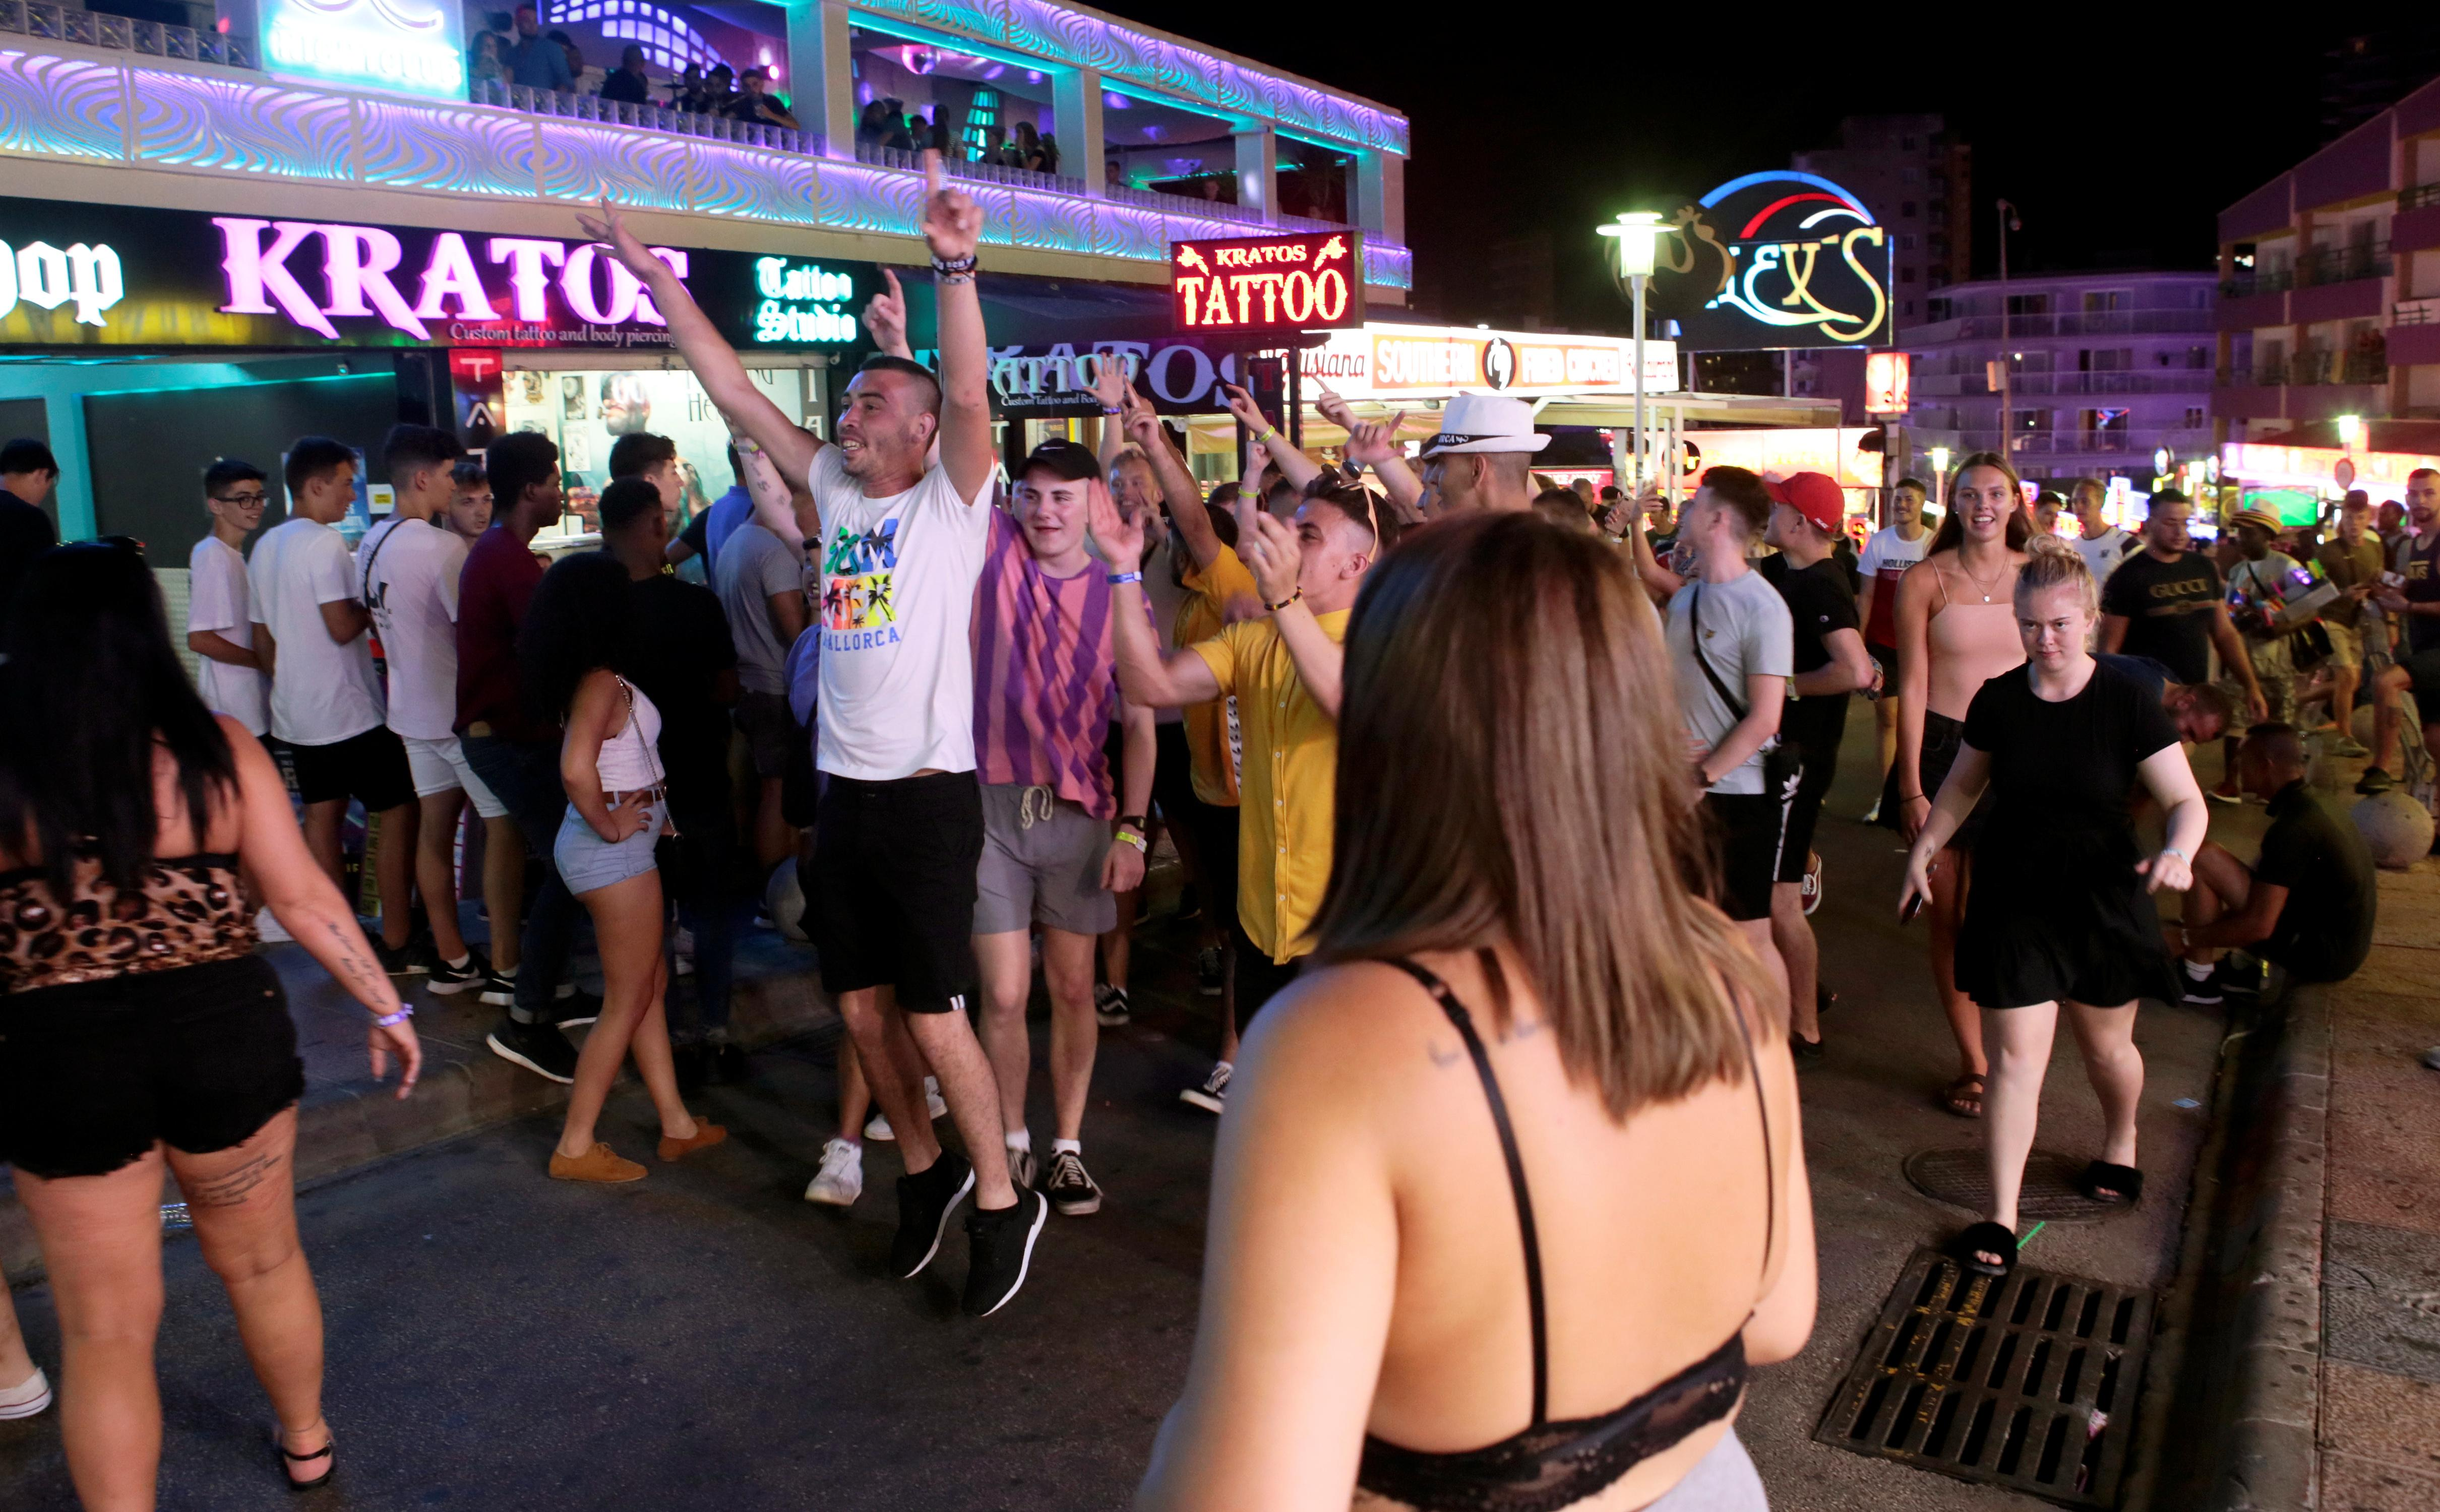 Spain cracks down on binge-drinking in Magaluf and Ibiza with new laws banning pub crawls and happy hours